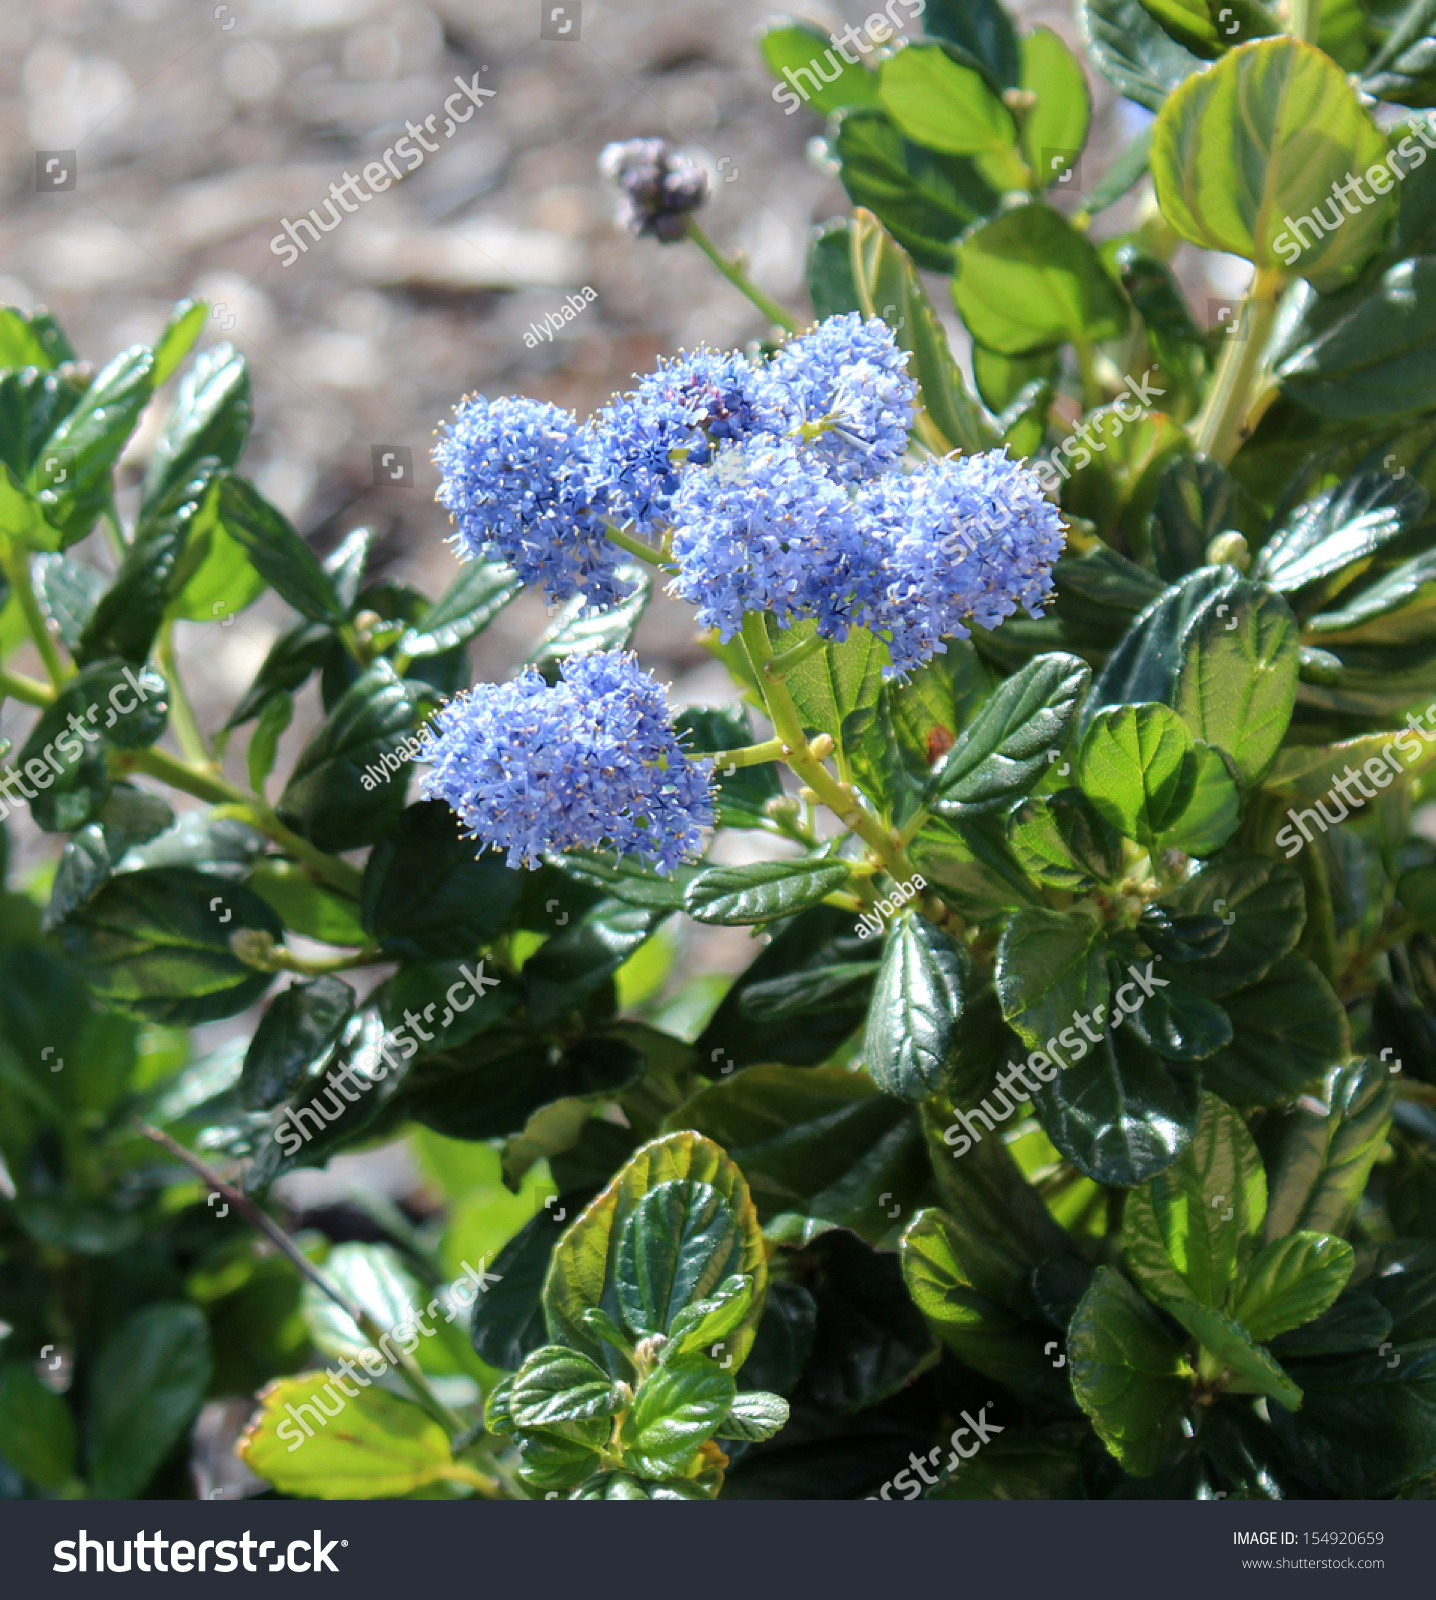 Fluffy tiny mid blue flower heads stock photo edit now 154920659 fluffy tiny mid blue flower heads of ceanothus thyrsifolia in glorious bloom in early spring is mightylinksfo